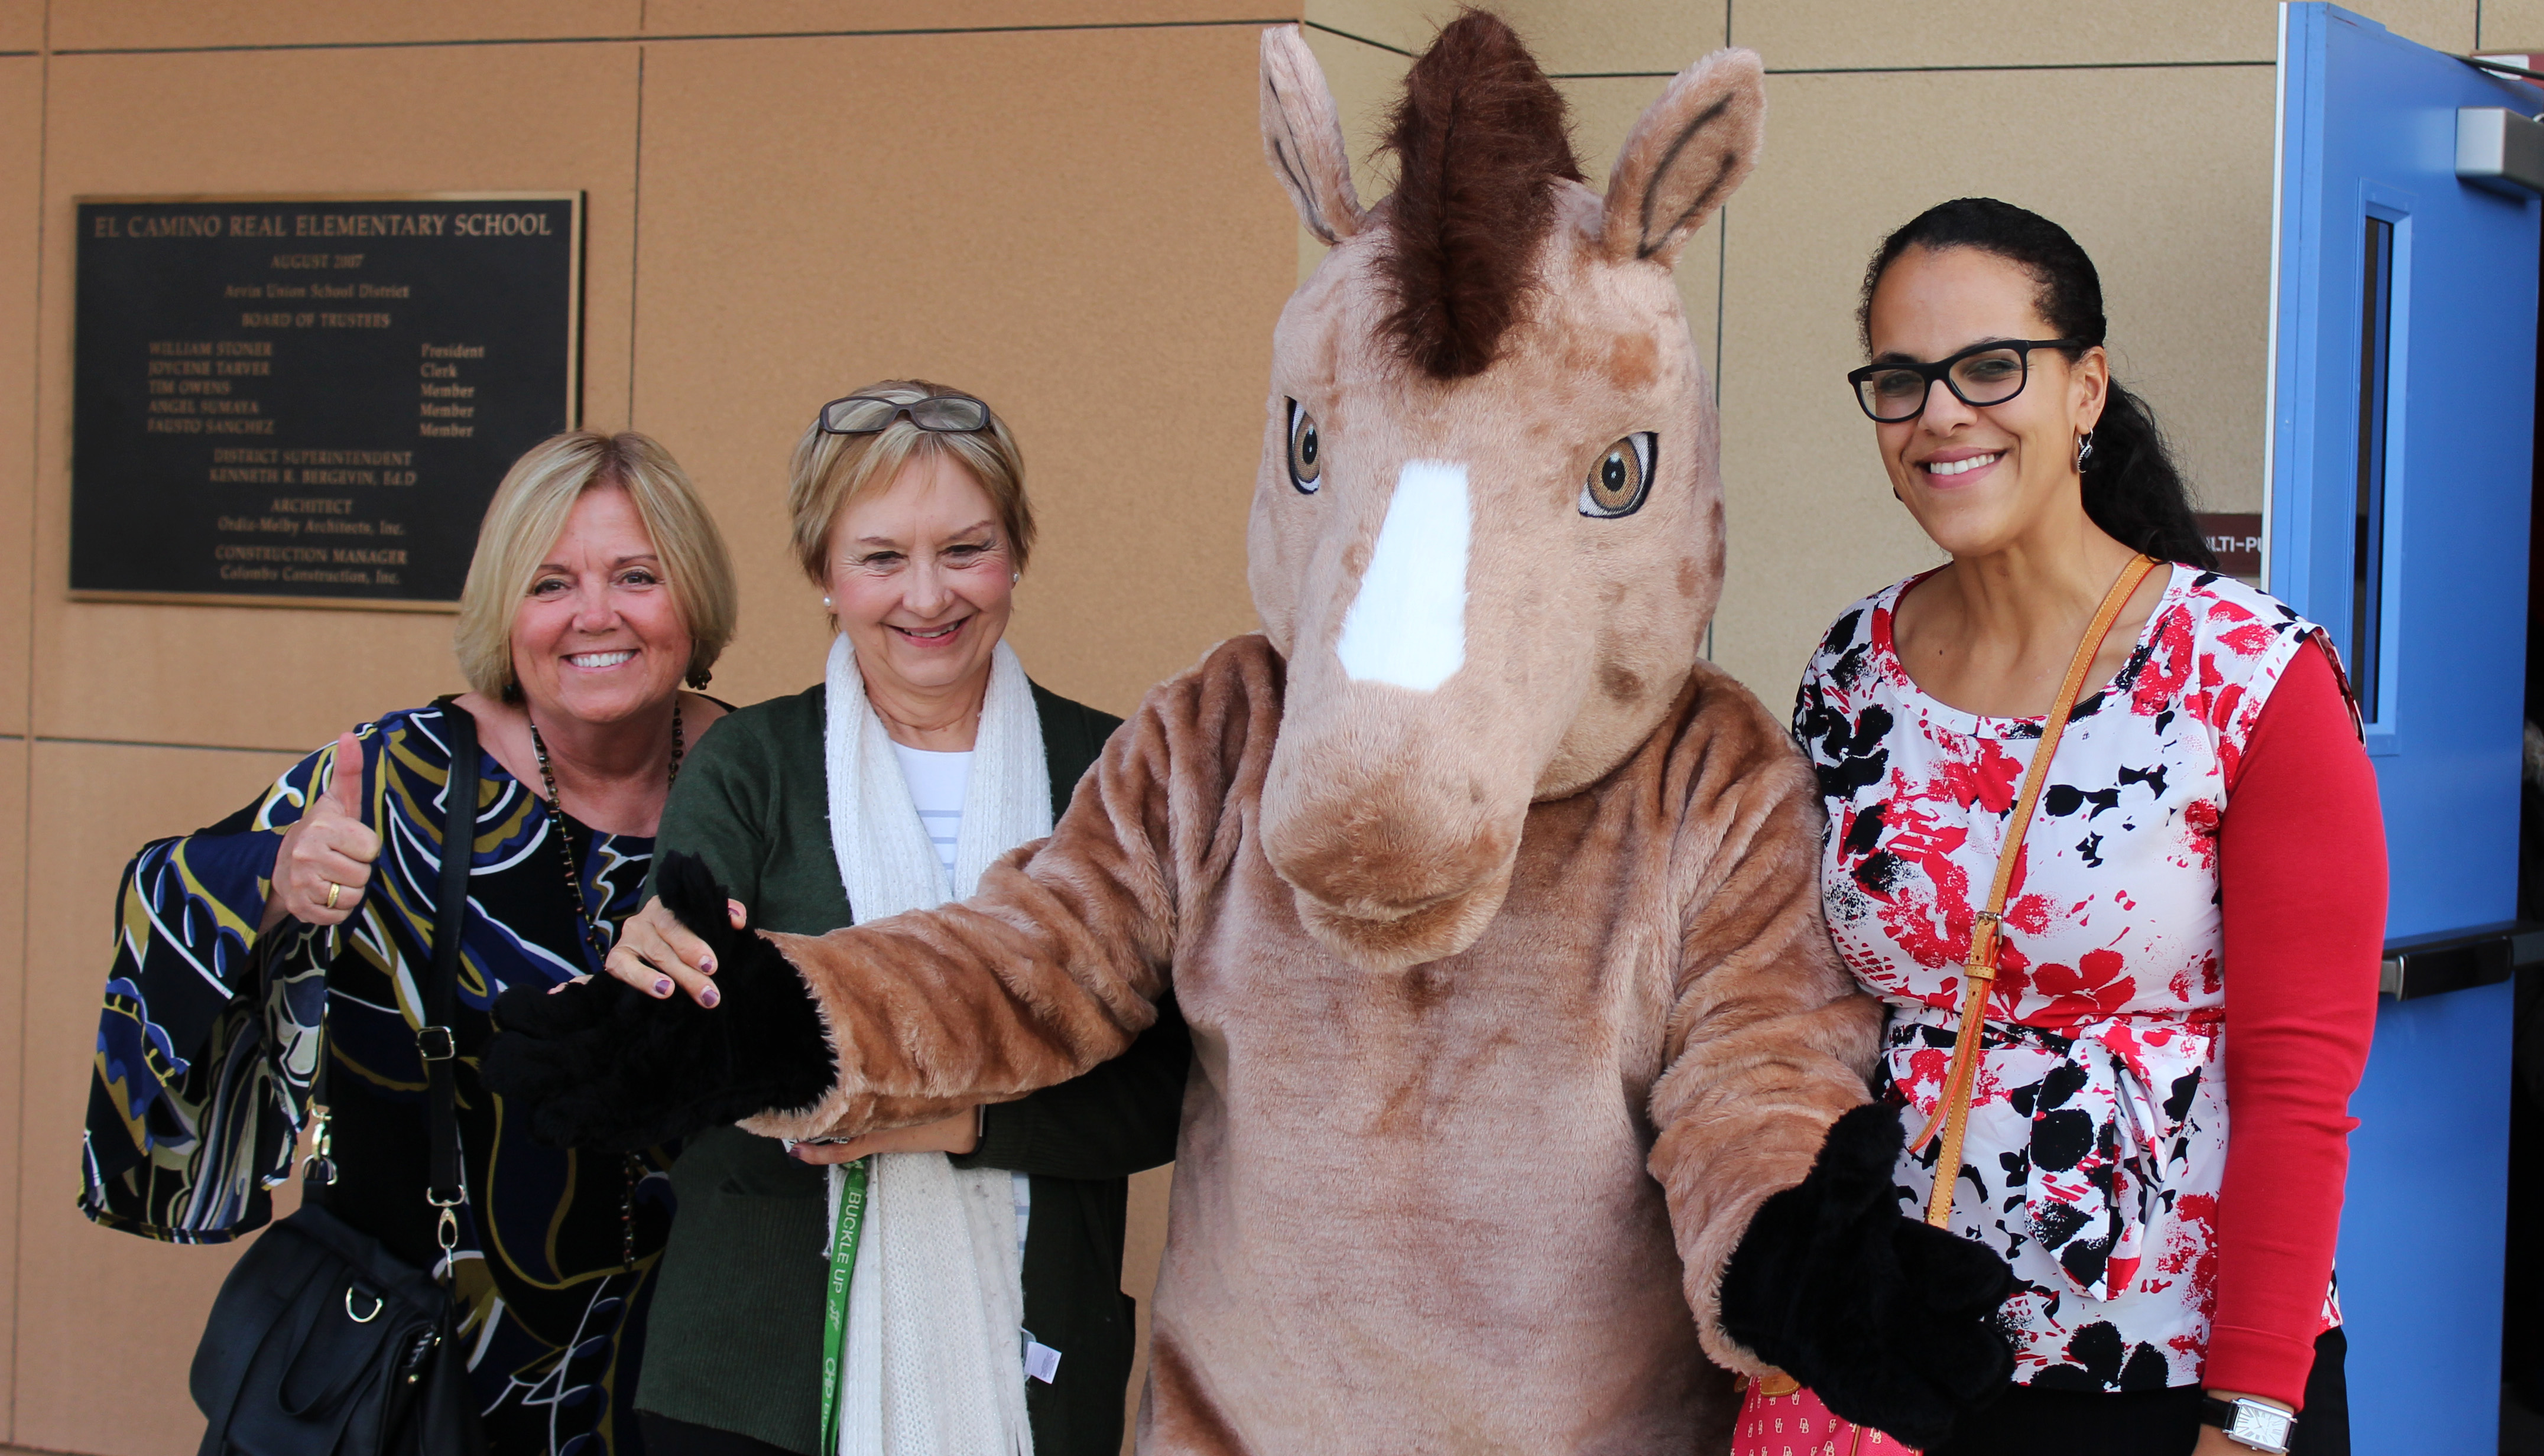 District Superintendent Dr. McLean, Principal Mrs. Betty Guyton and Vice Principal Ms. Patrica Lane with mascot